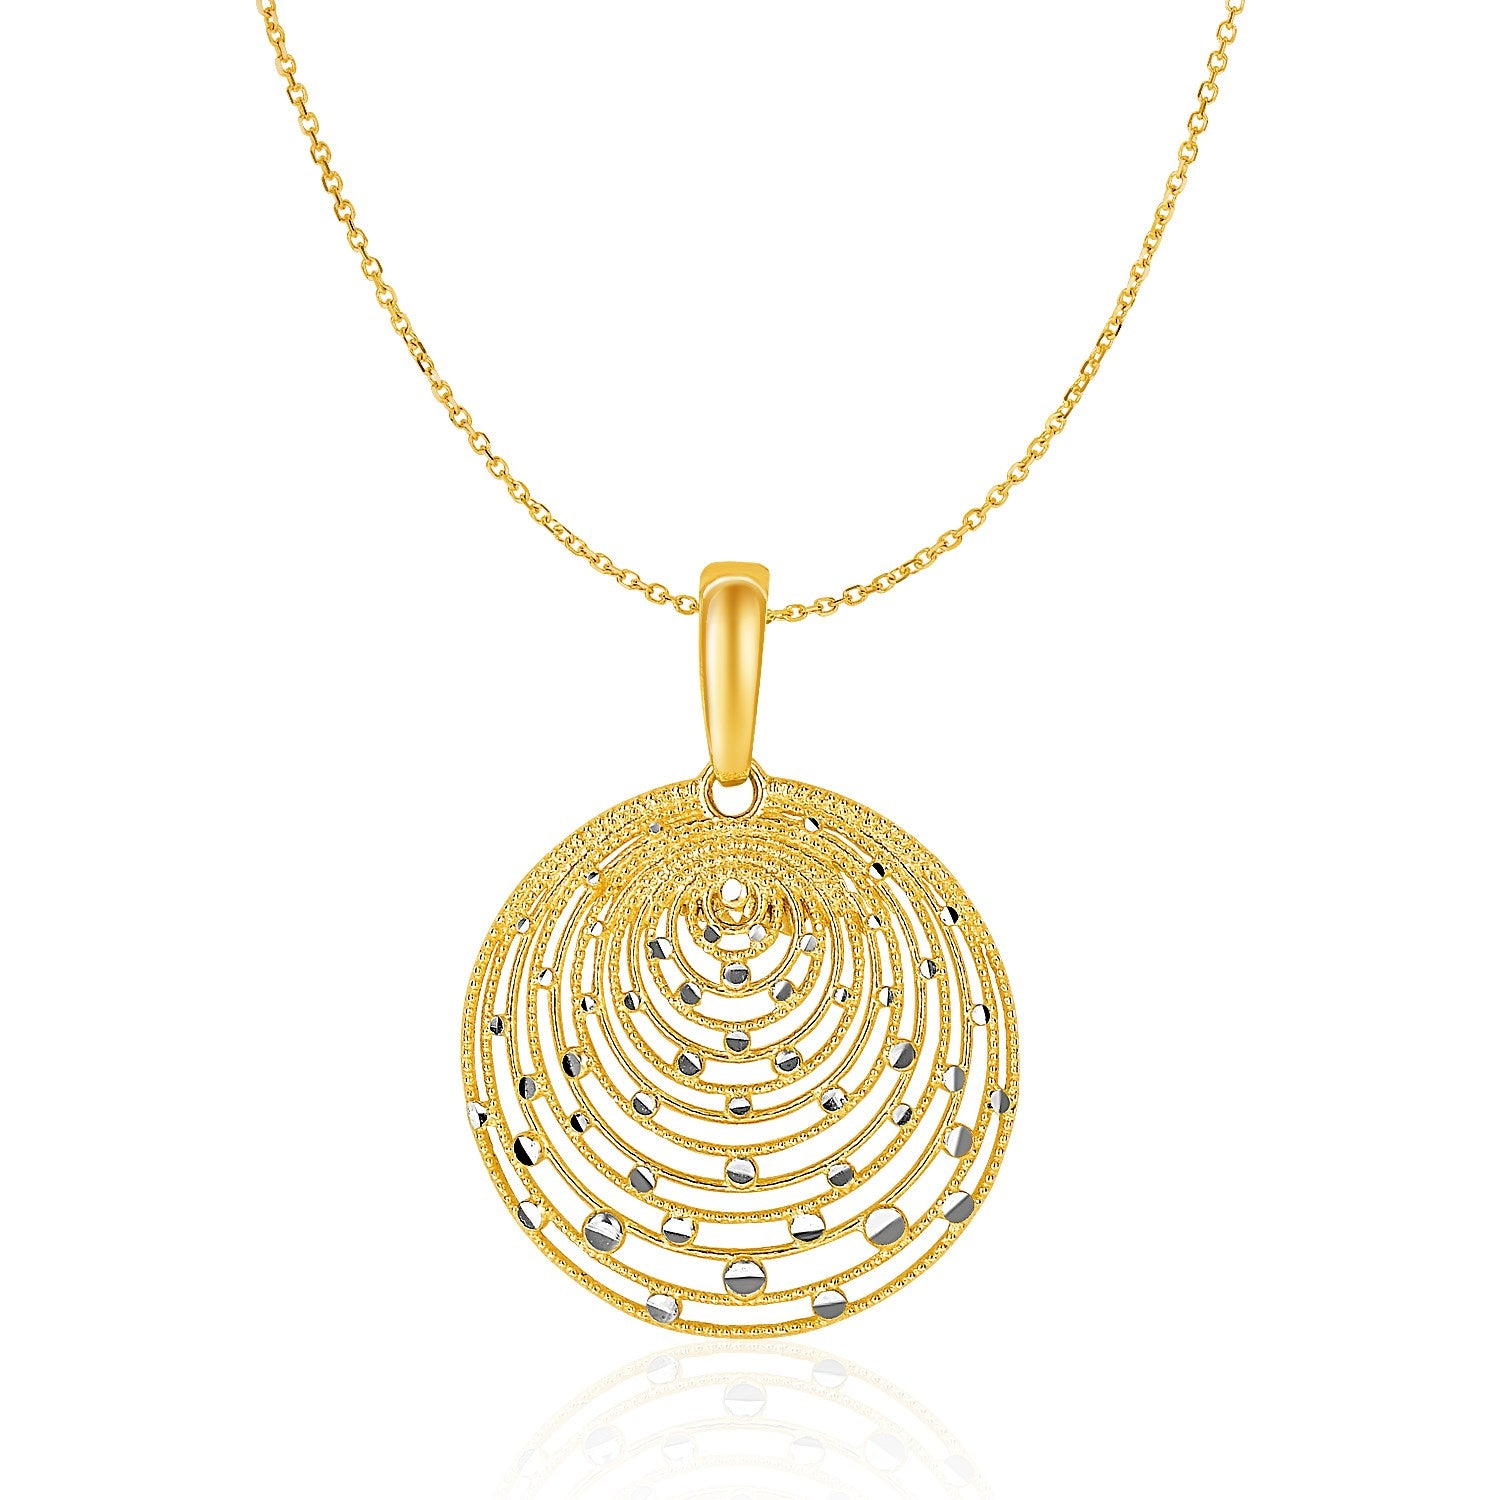 14K Two-Tone Gold with Graduated Circles Pendant